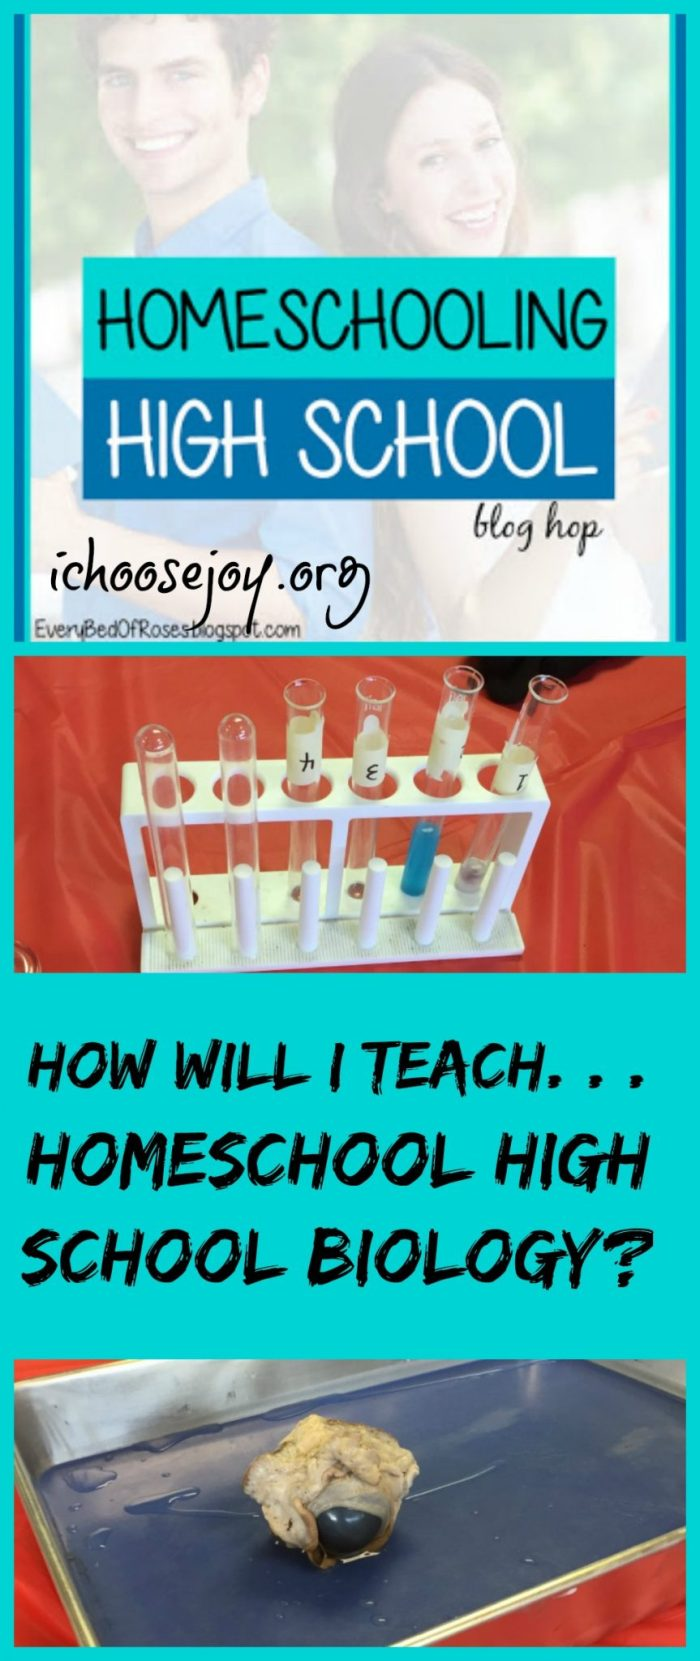 How Will I Teach Homeschool High School Biology